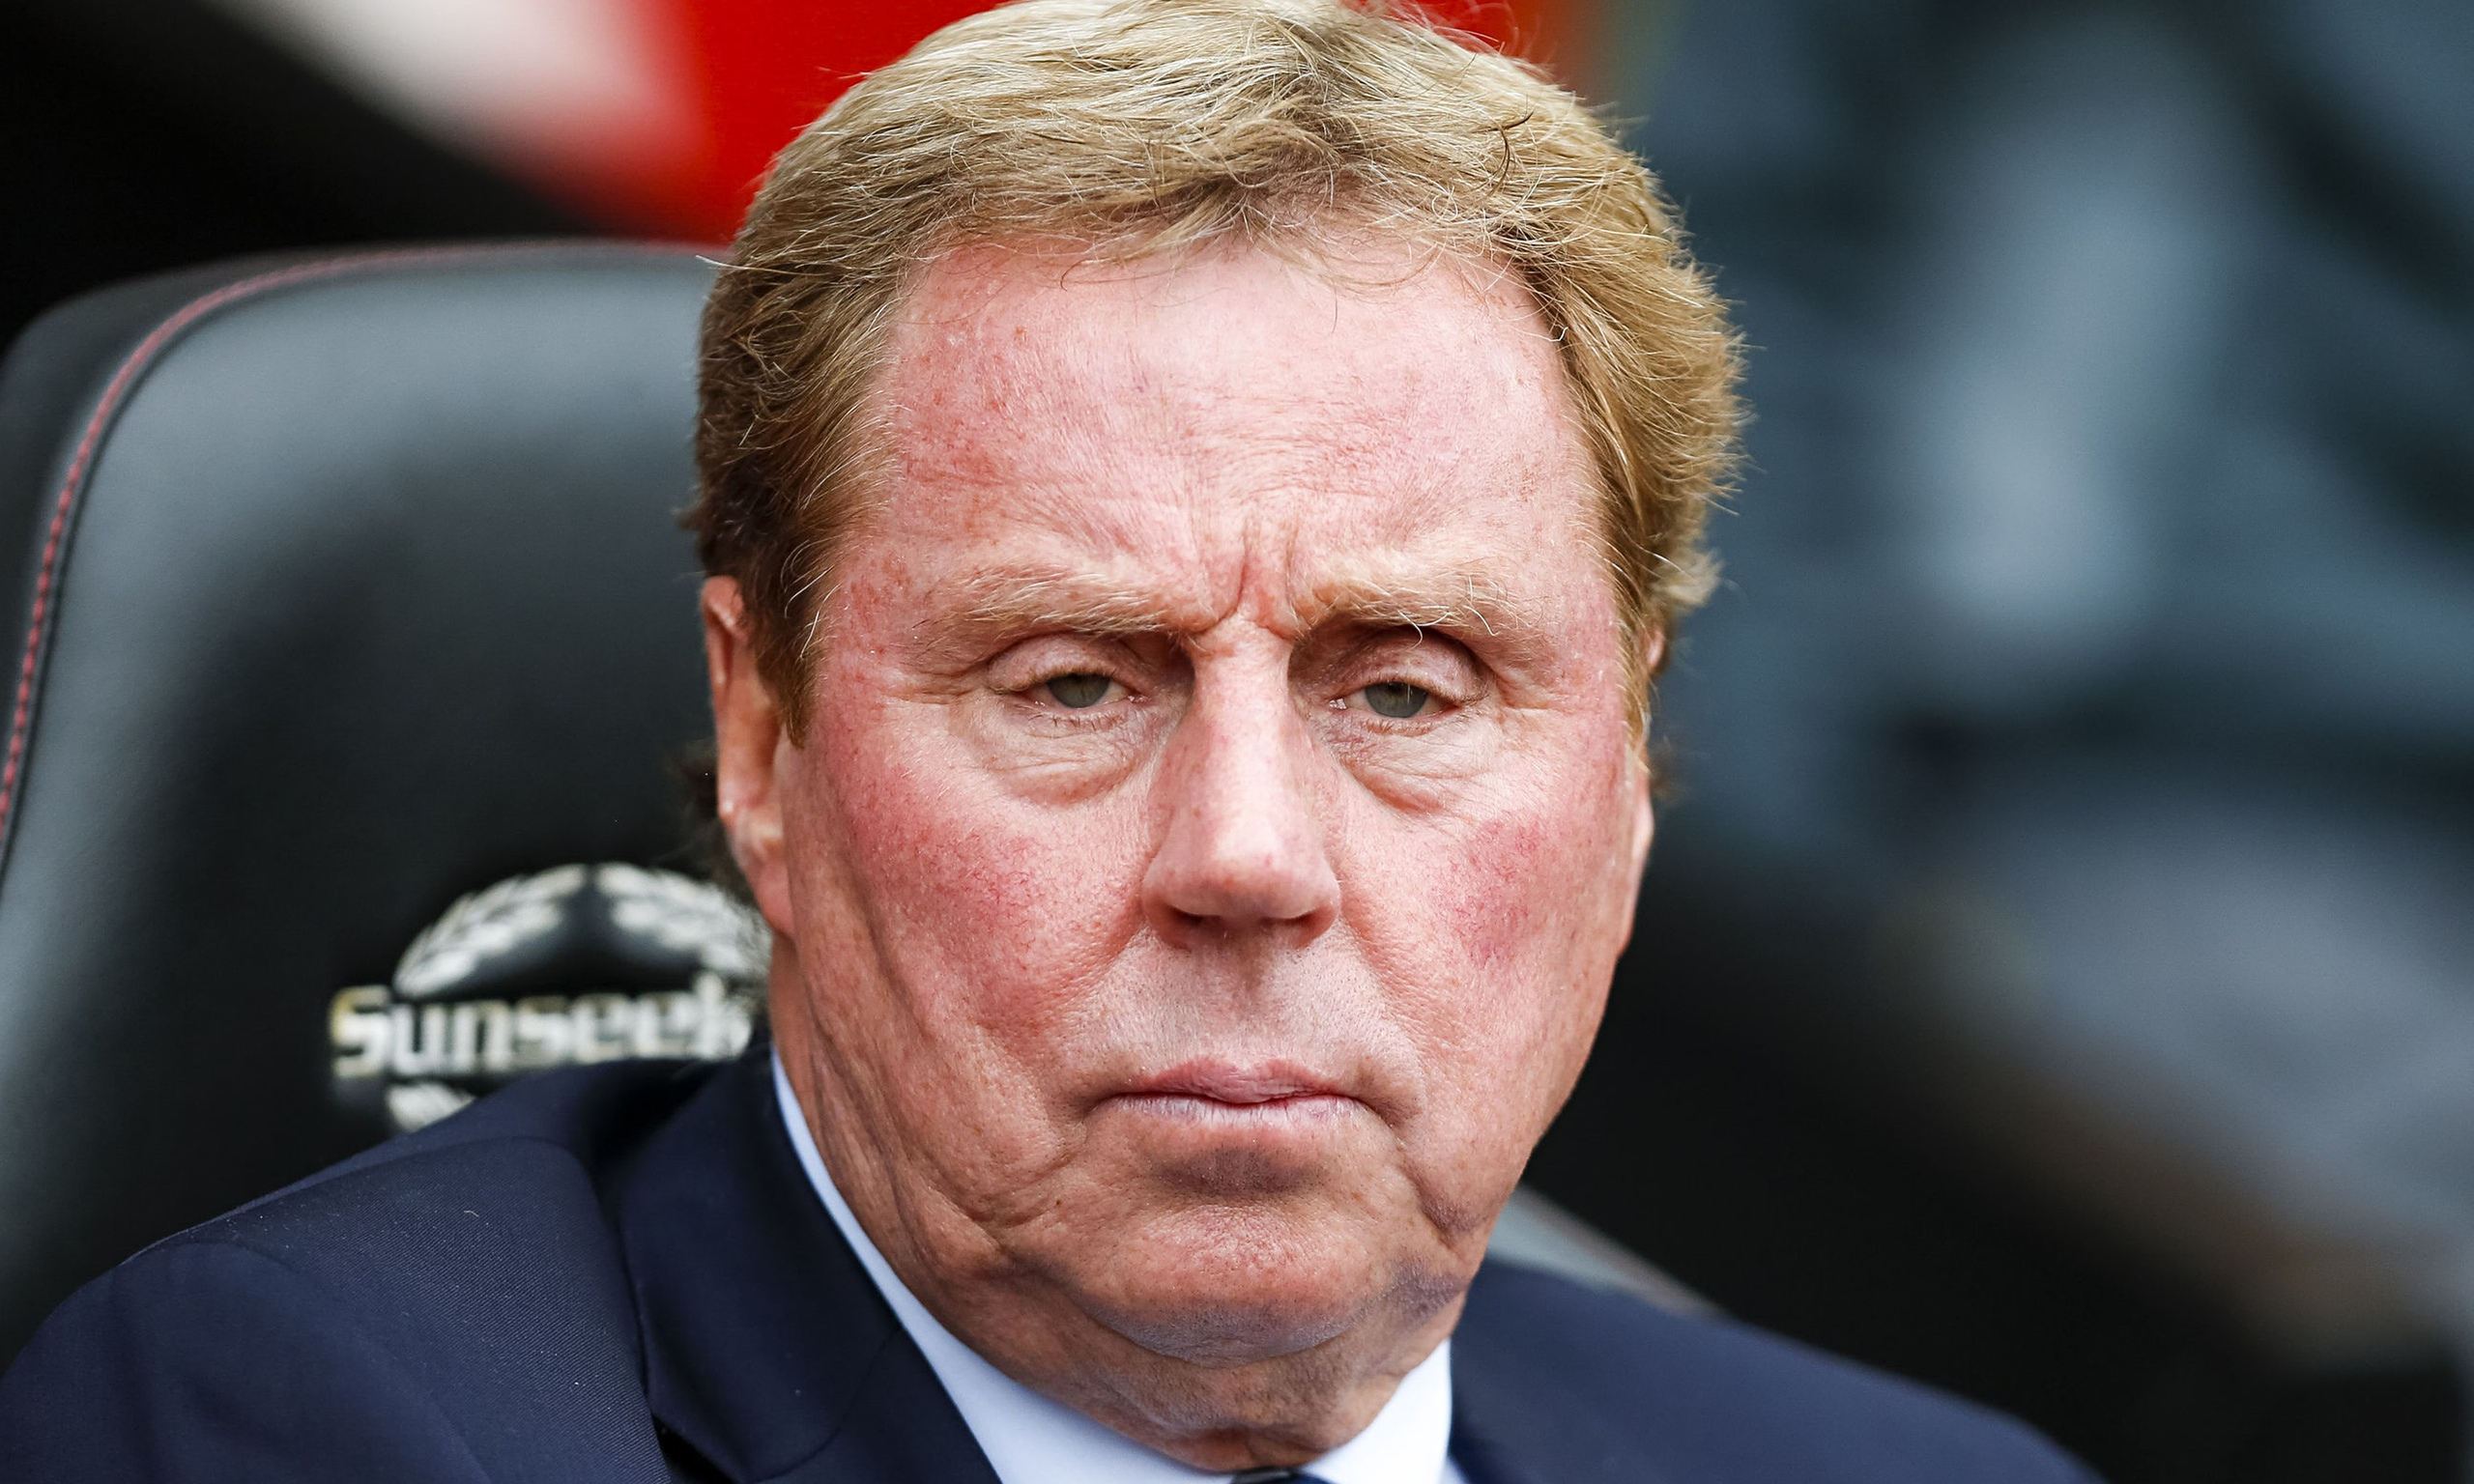 Harry Redknapp says Ruud Gullit advised him to sign Luis Suárez for Tottenham.